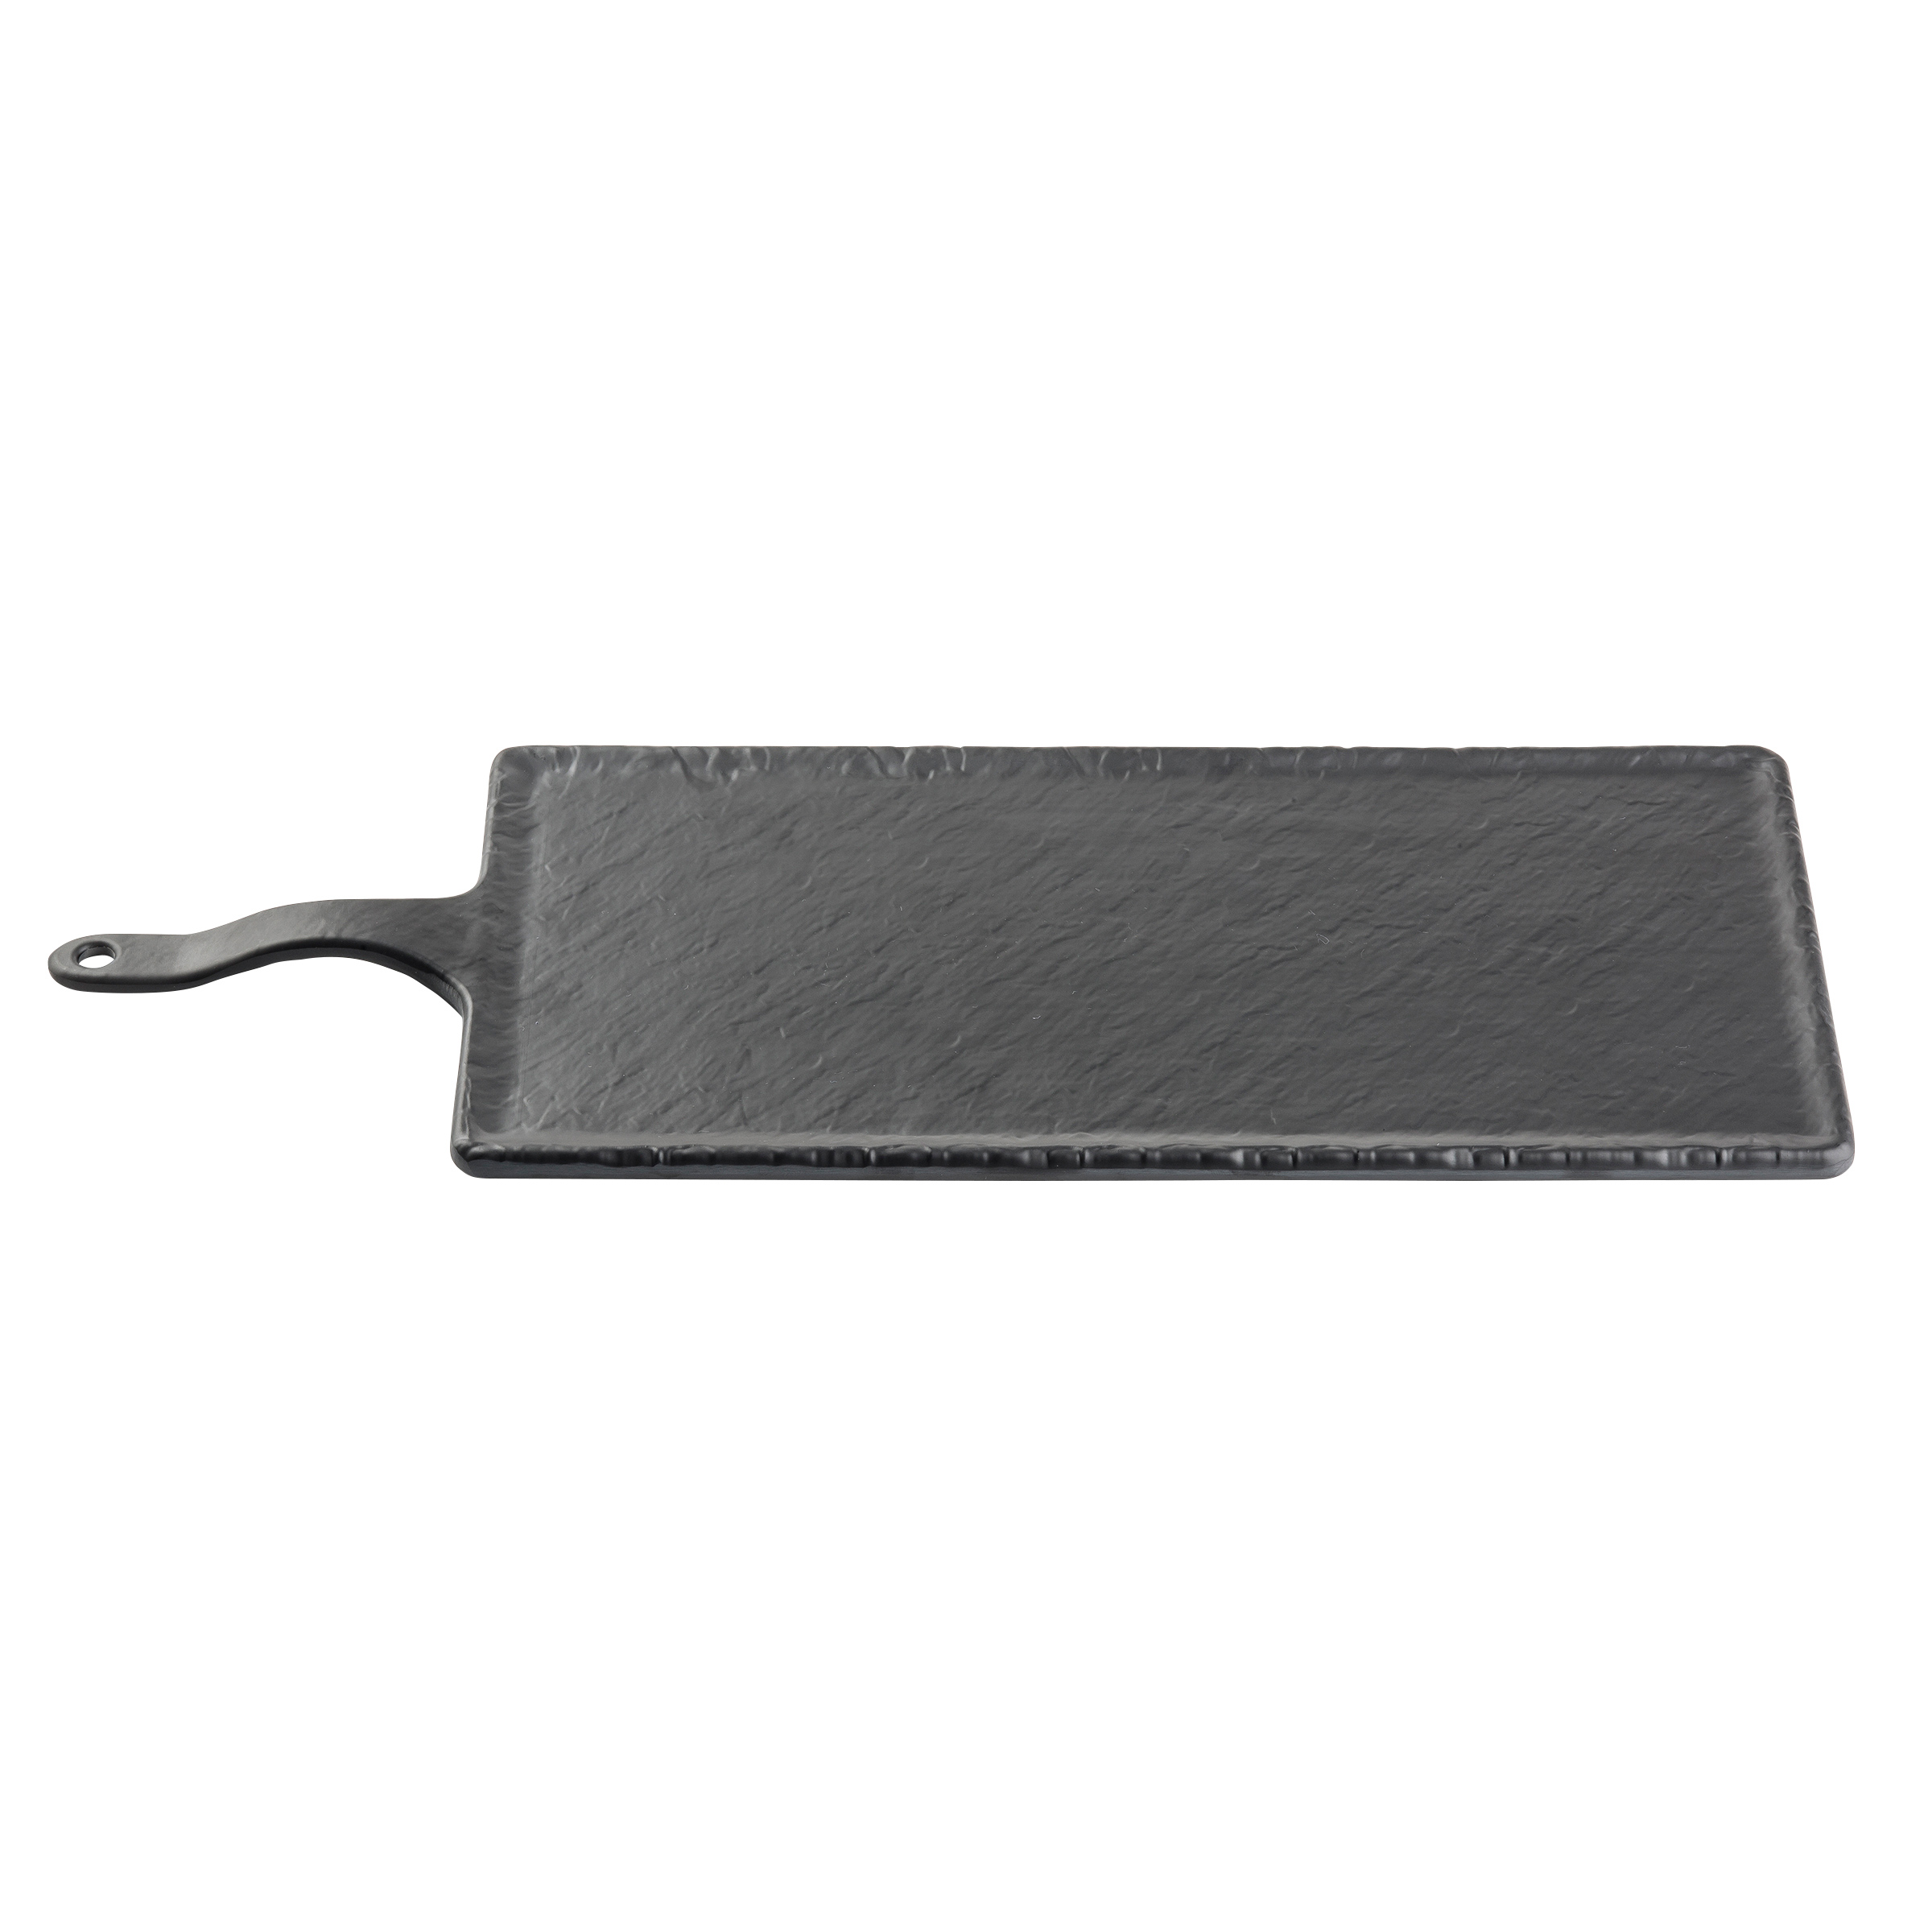 TableCraft Products MSP5120 serving & display tray